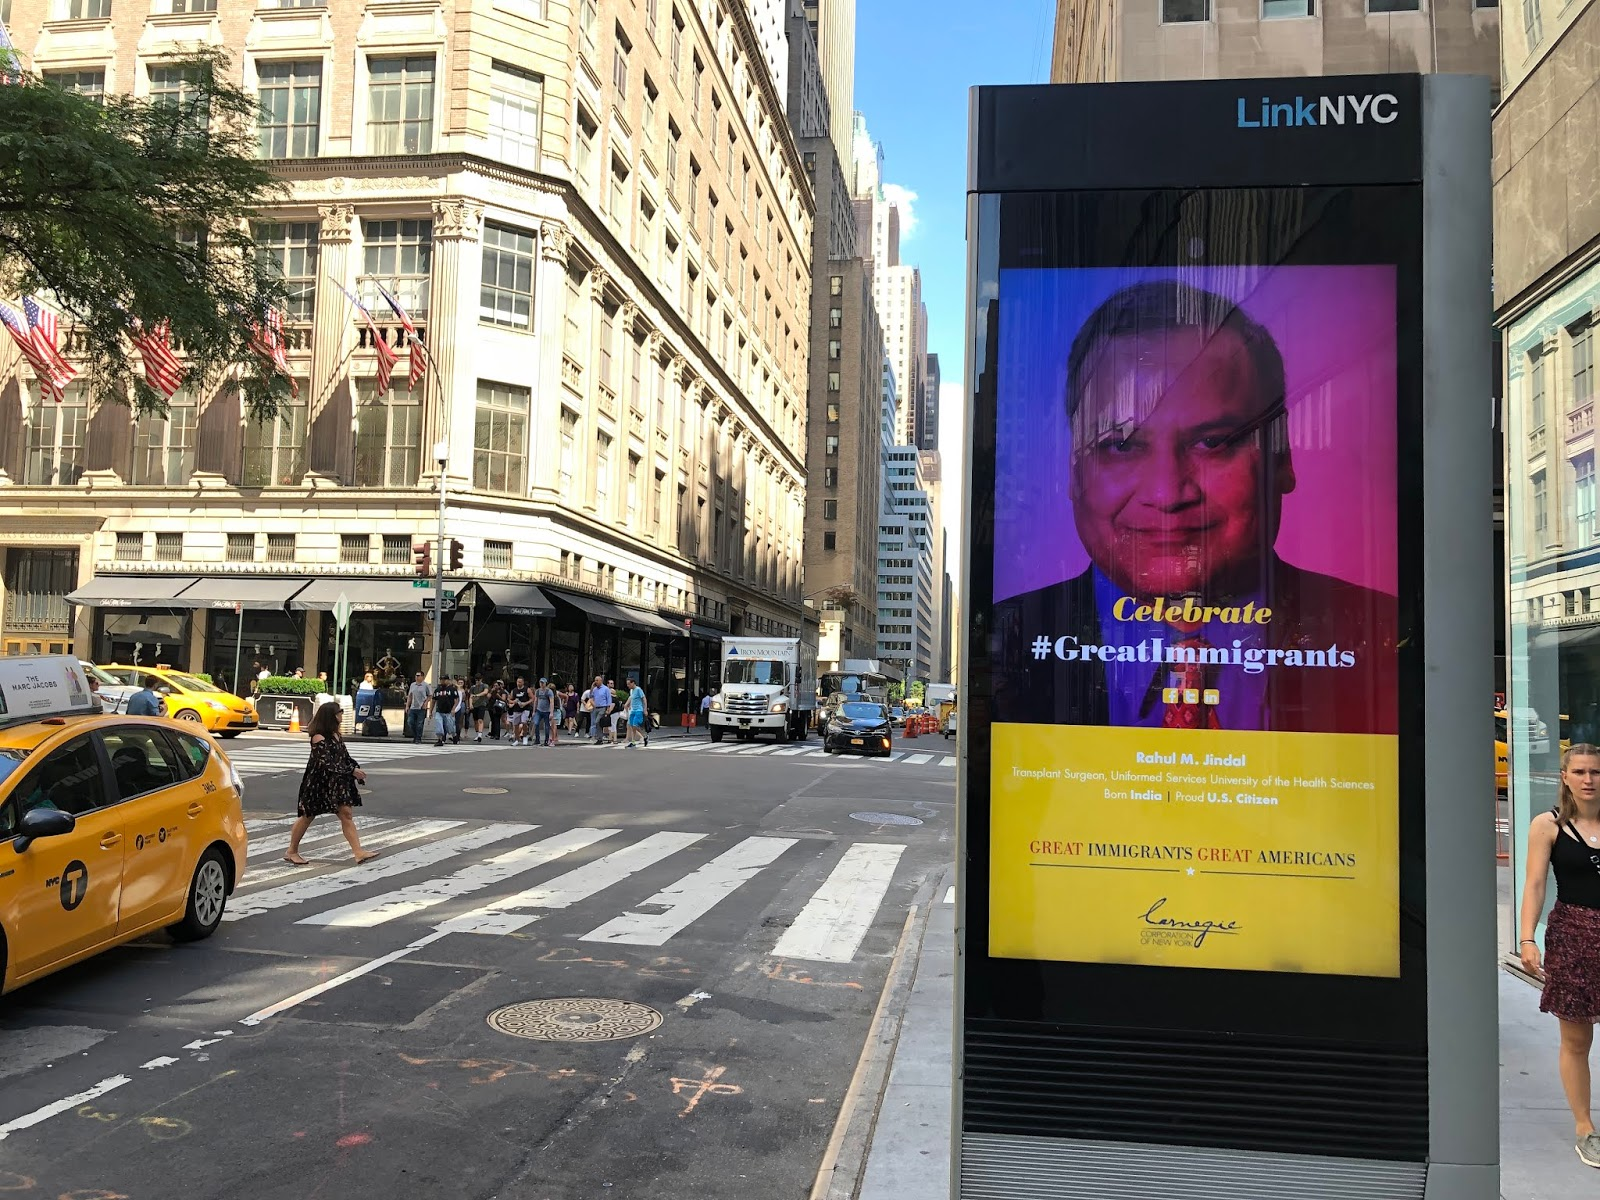 bus stop poster in NYC of Jindal